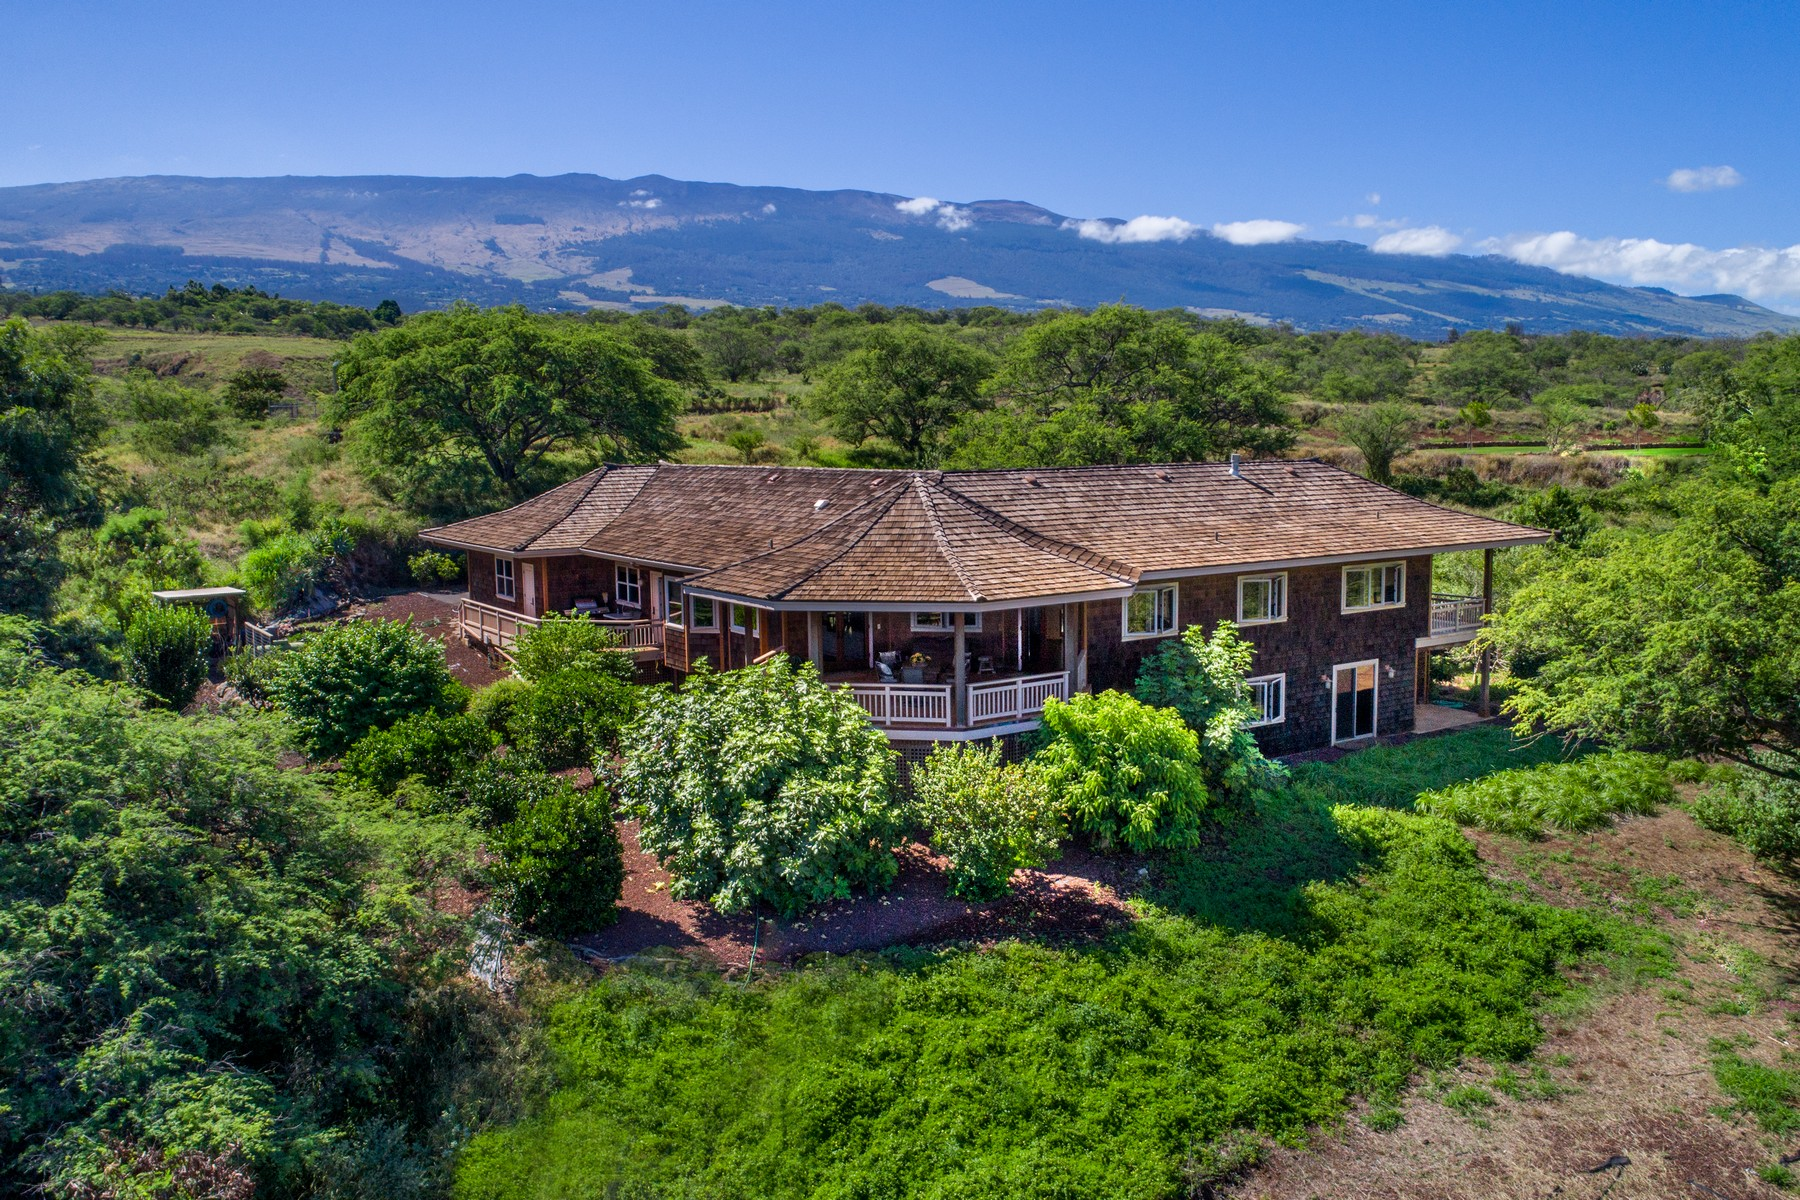 Single Family Home for Sale at Maui Upcountry Classic Plantation Home On 6 Acres 101 Ikena Kai Place, Kula, Hawaii, 96790 United States